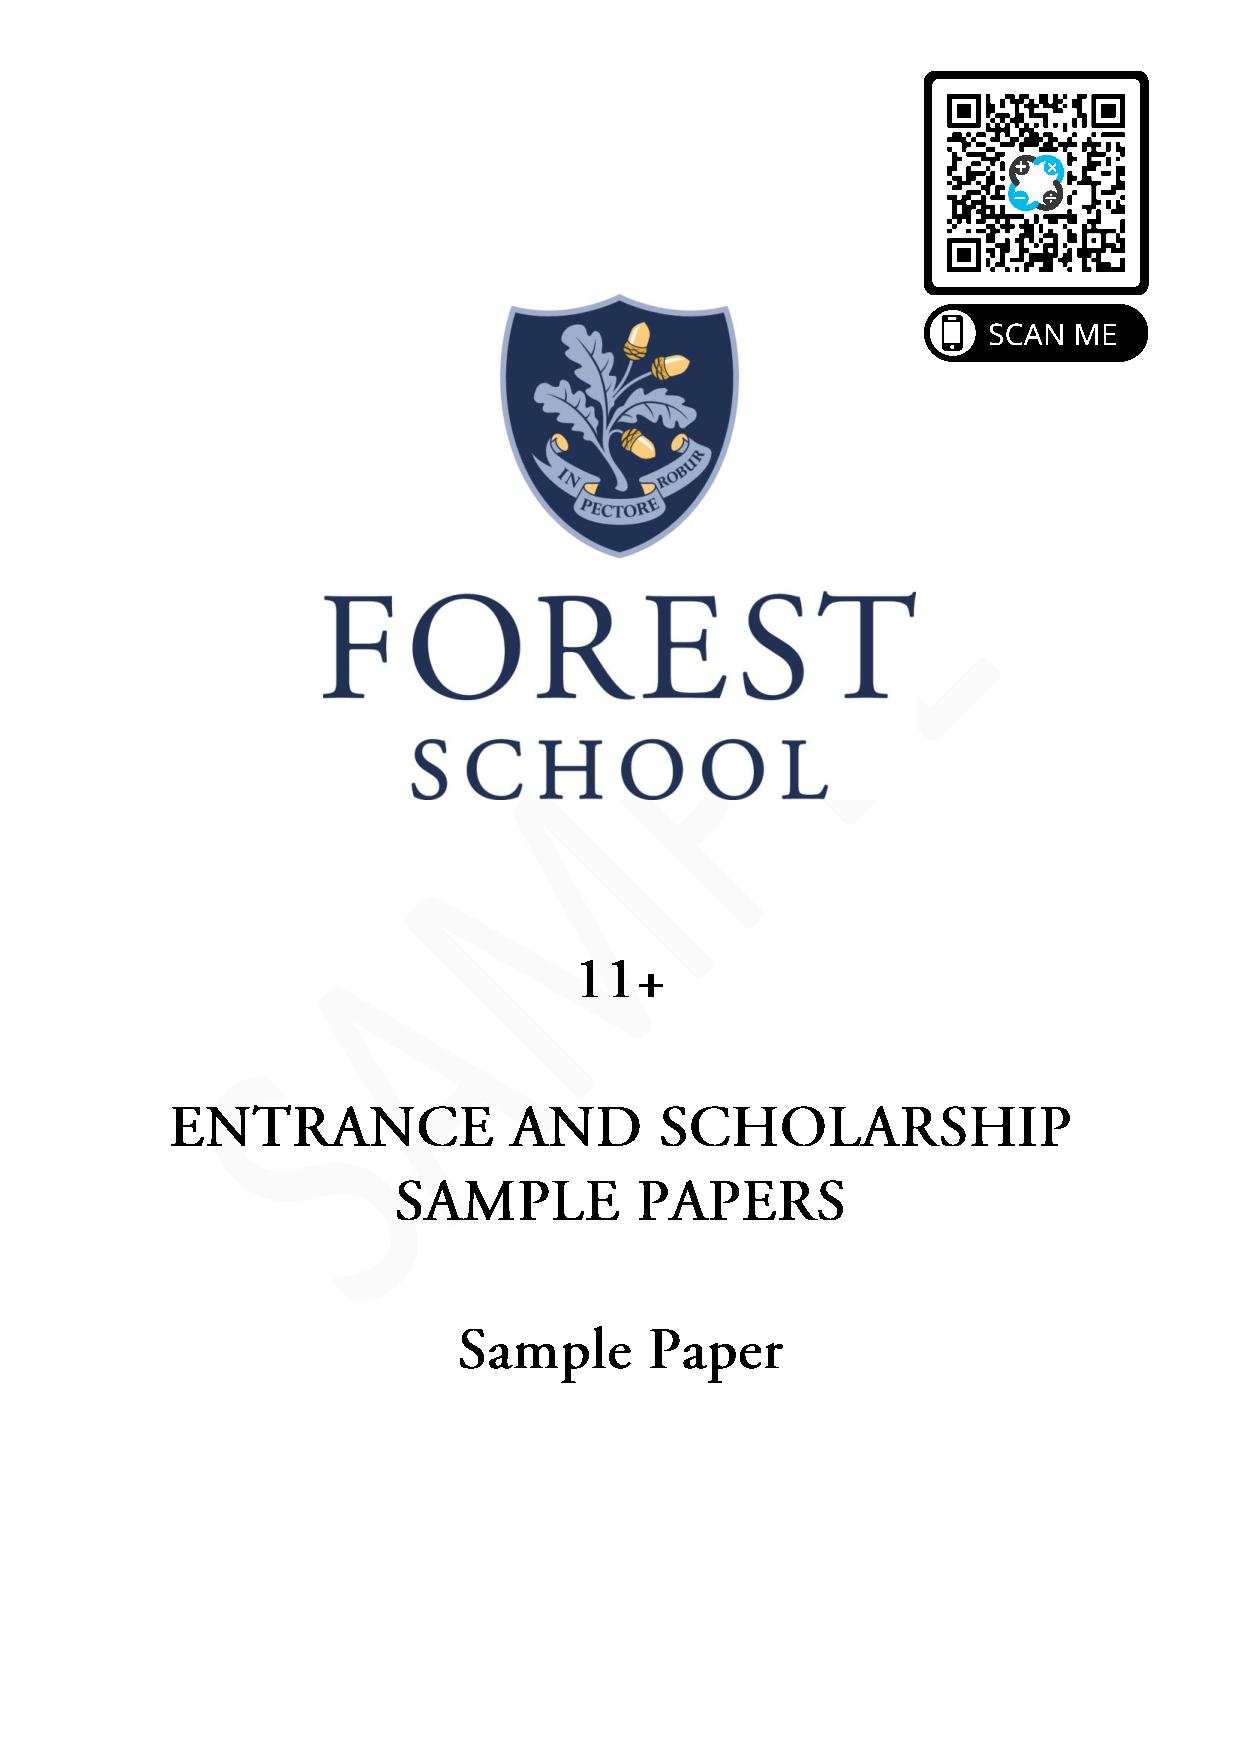 Forest School 11 Plus Maths Sample Paper 1 2020 2 page 001 Ans